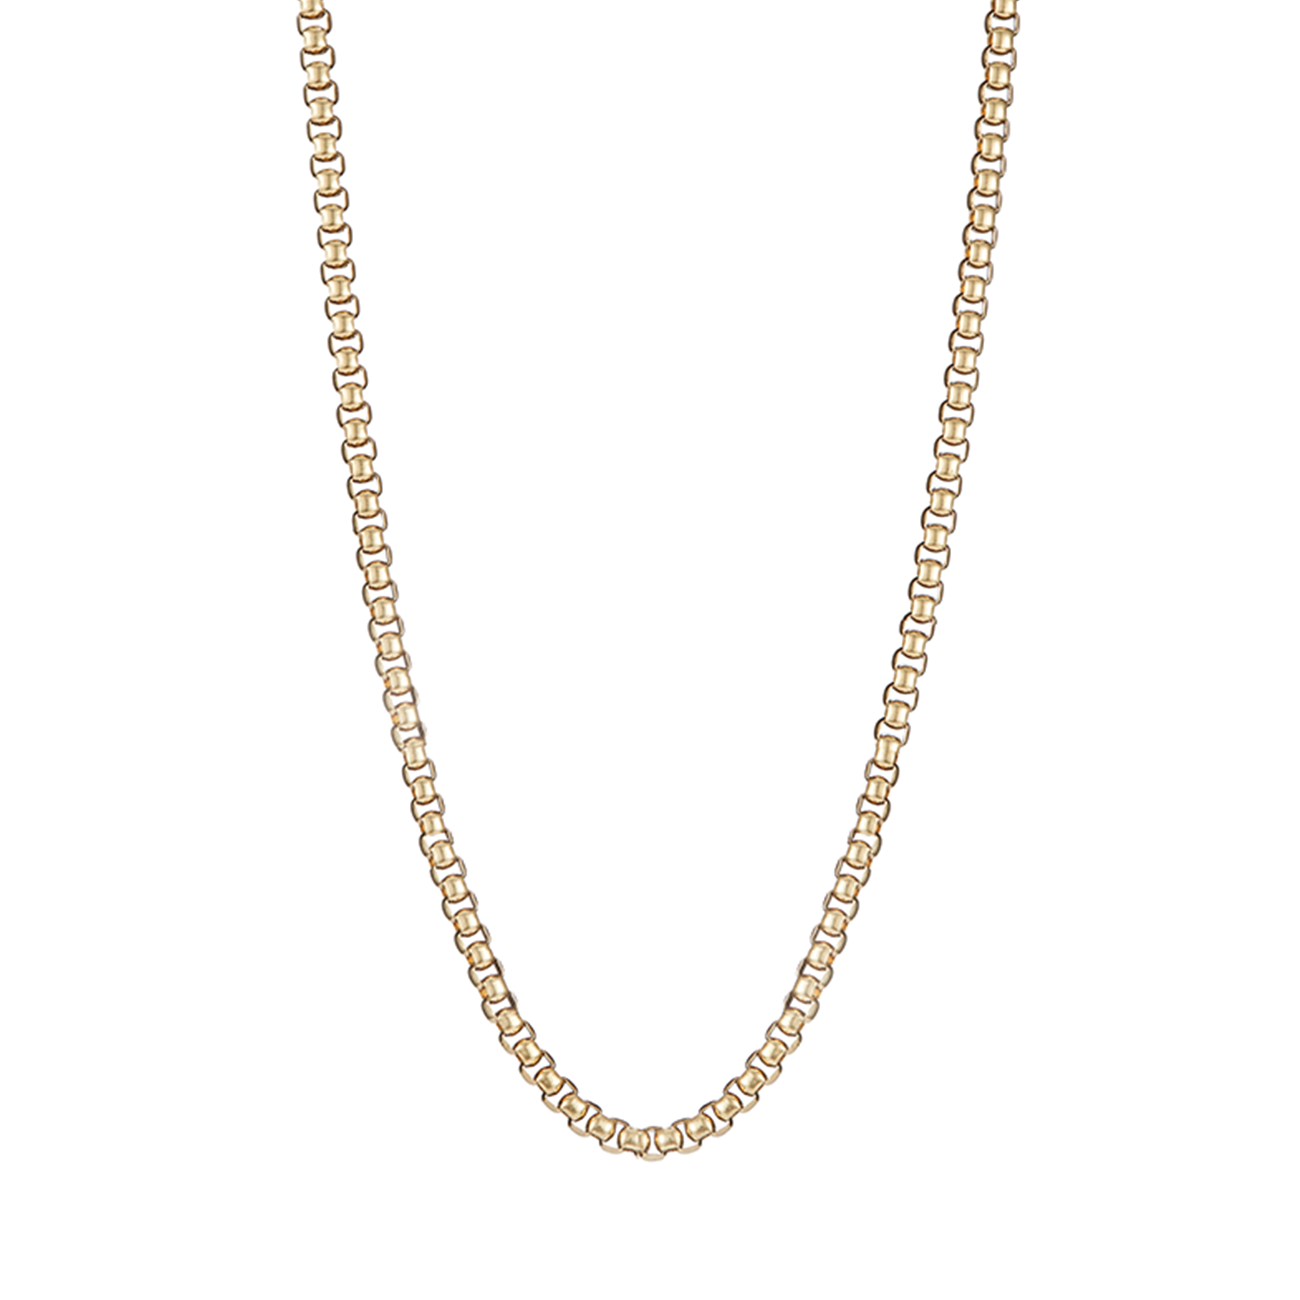 Extra long antique chain Freya Necklace in gold by JENNY BIRD